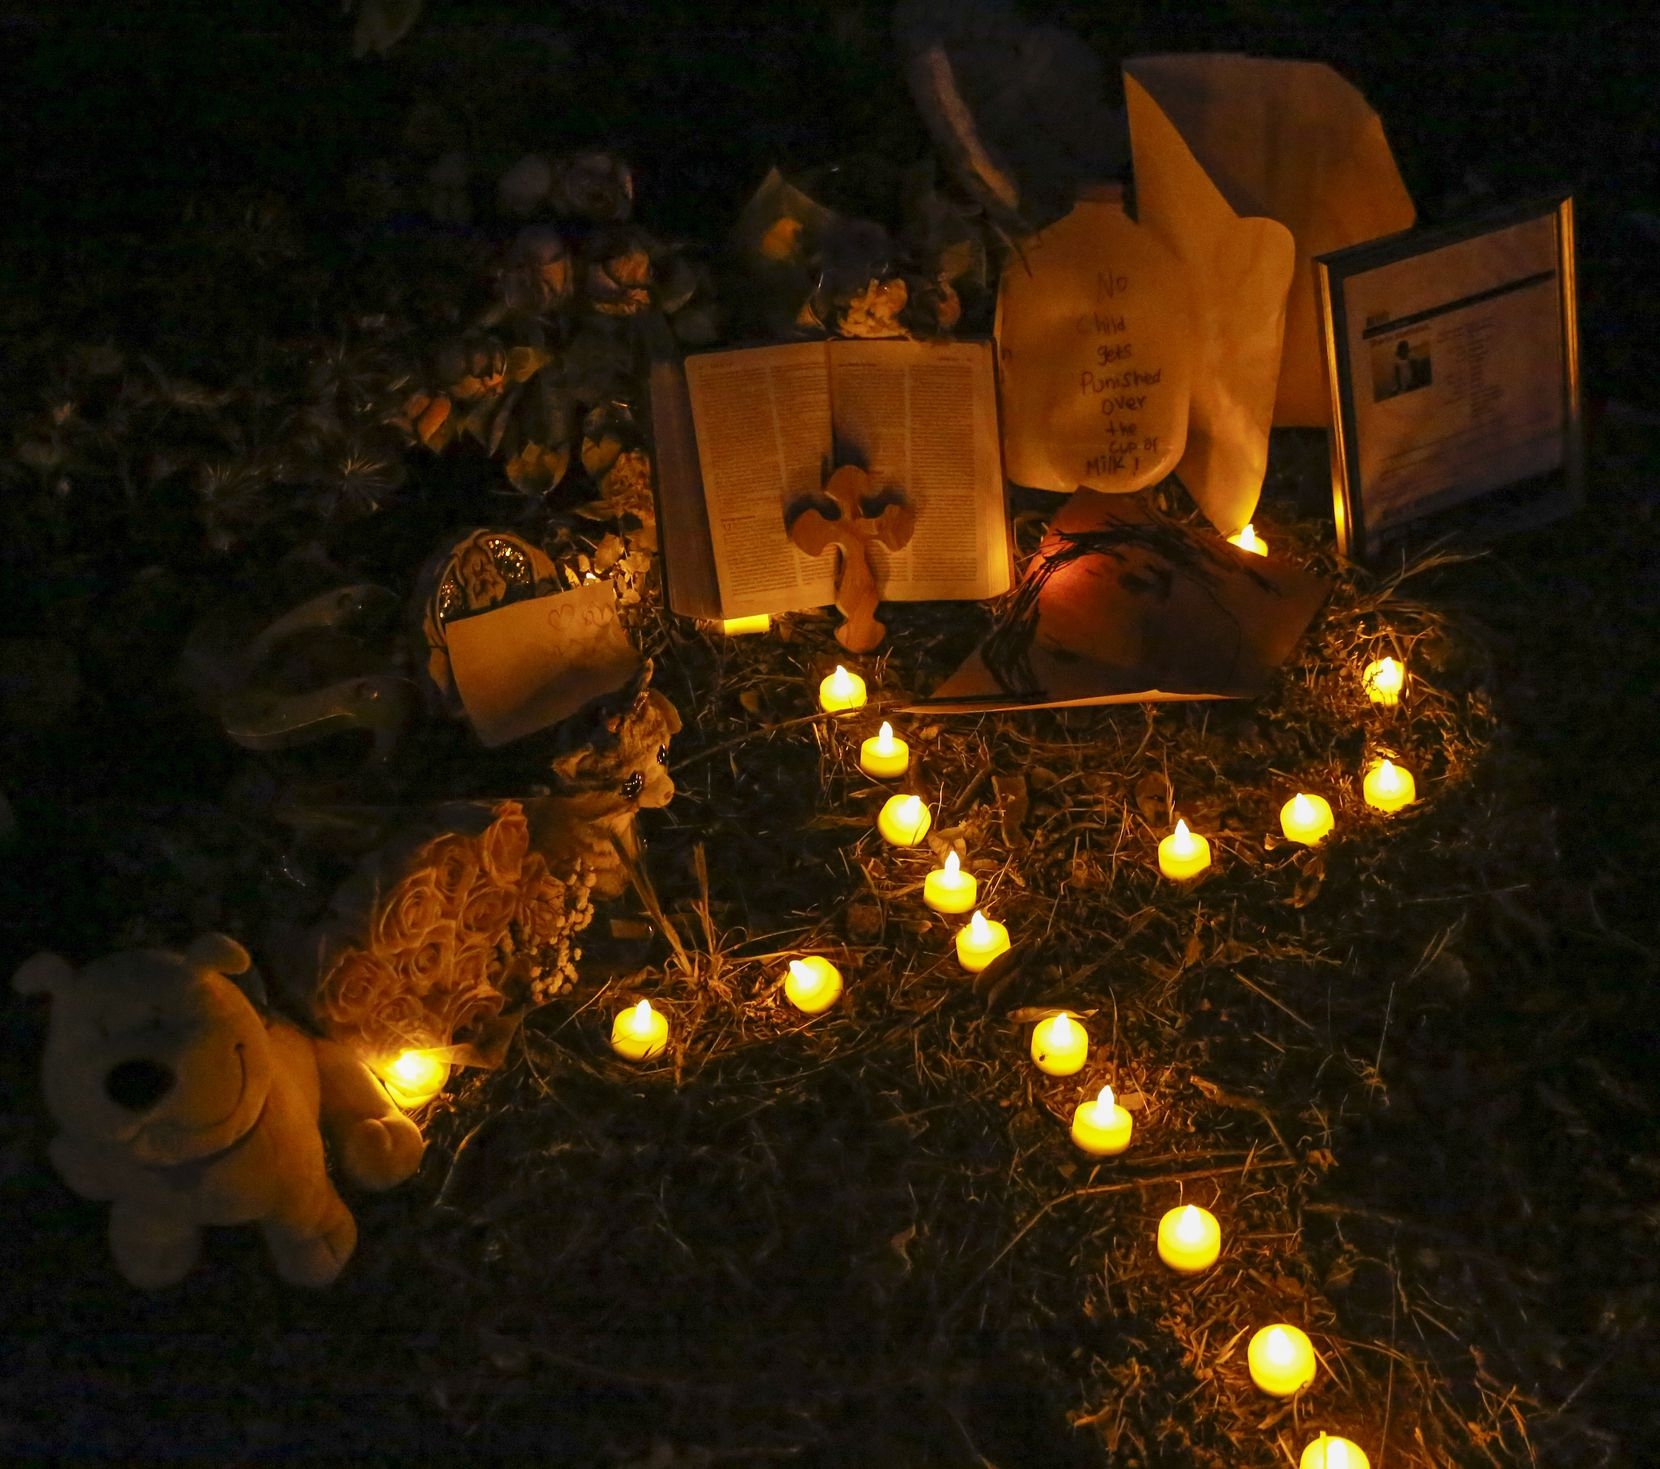 Artificial candles placed in the pattern of a cross light a small tribute set up for Sherin Mathews on Oct. 12.